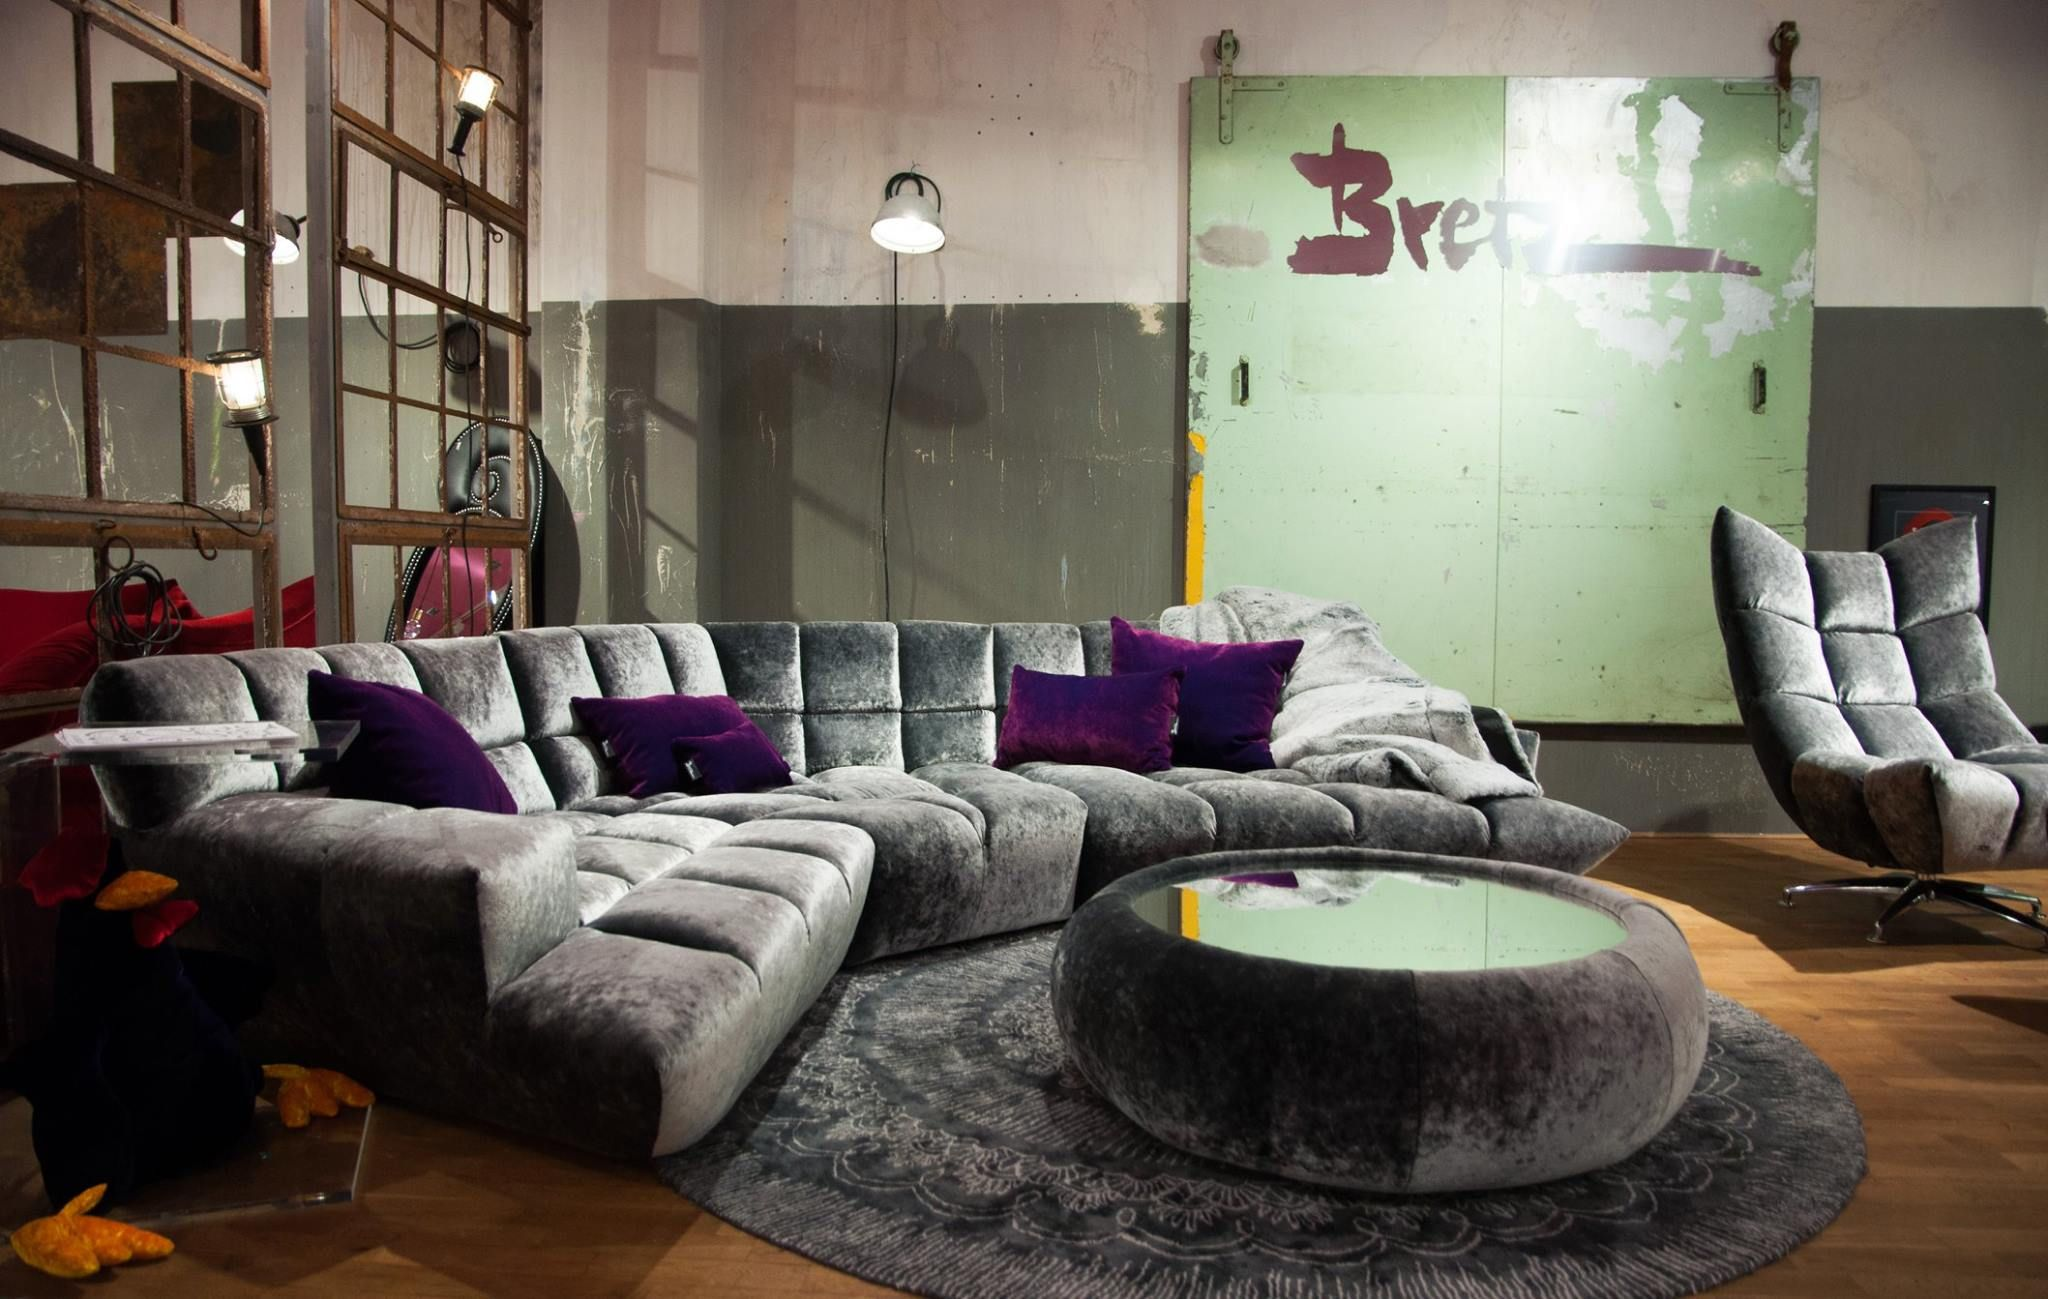 Bretz Cloud 7 cloud 7 sofa upholstered in shimmering silver grey velour flagship bretz store in dusseldorf